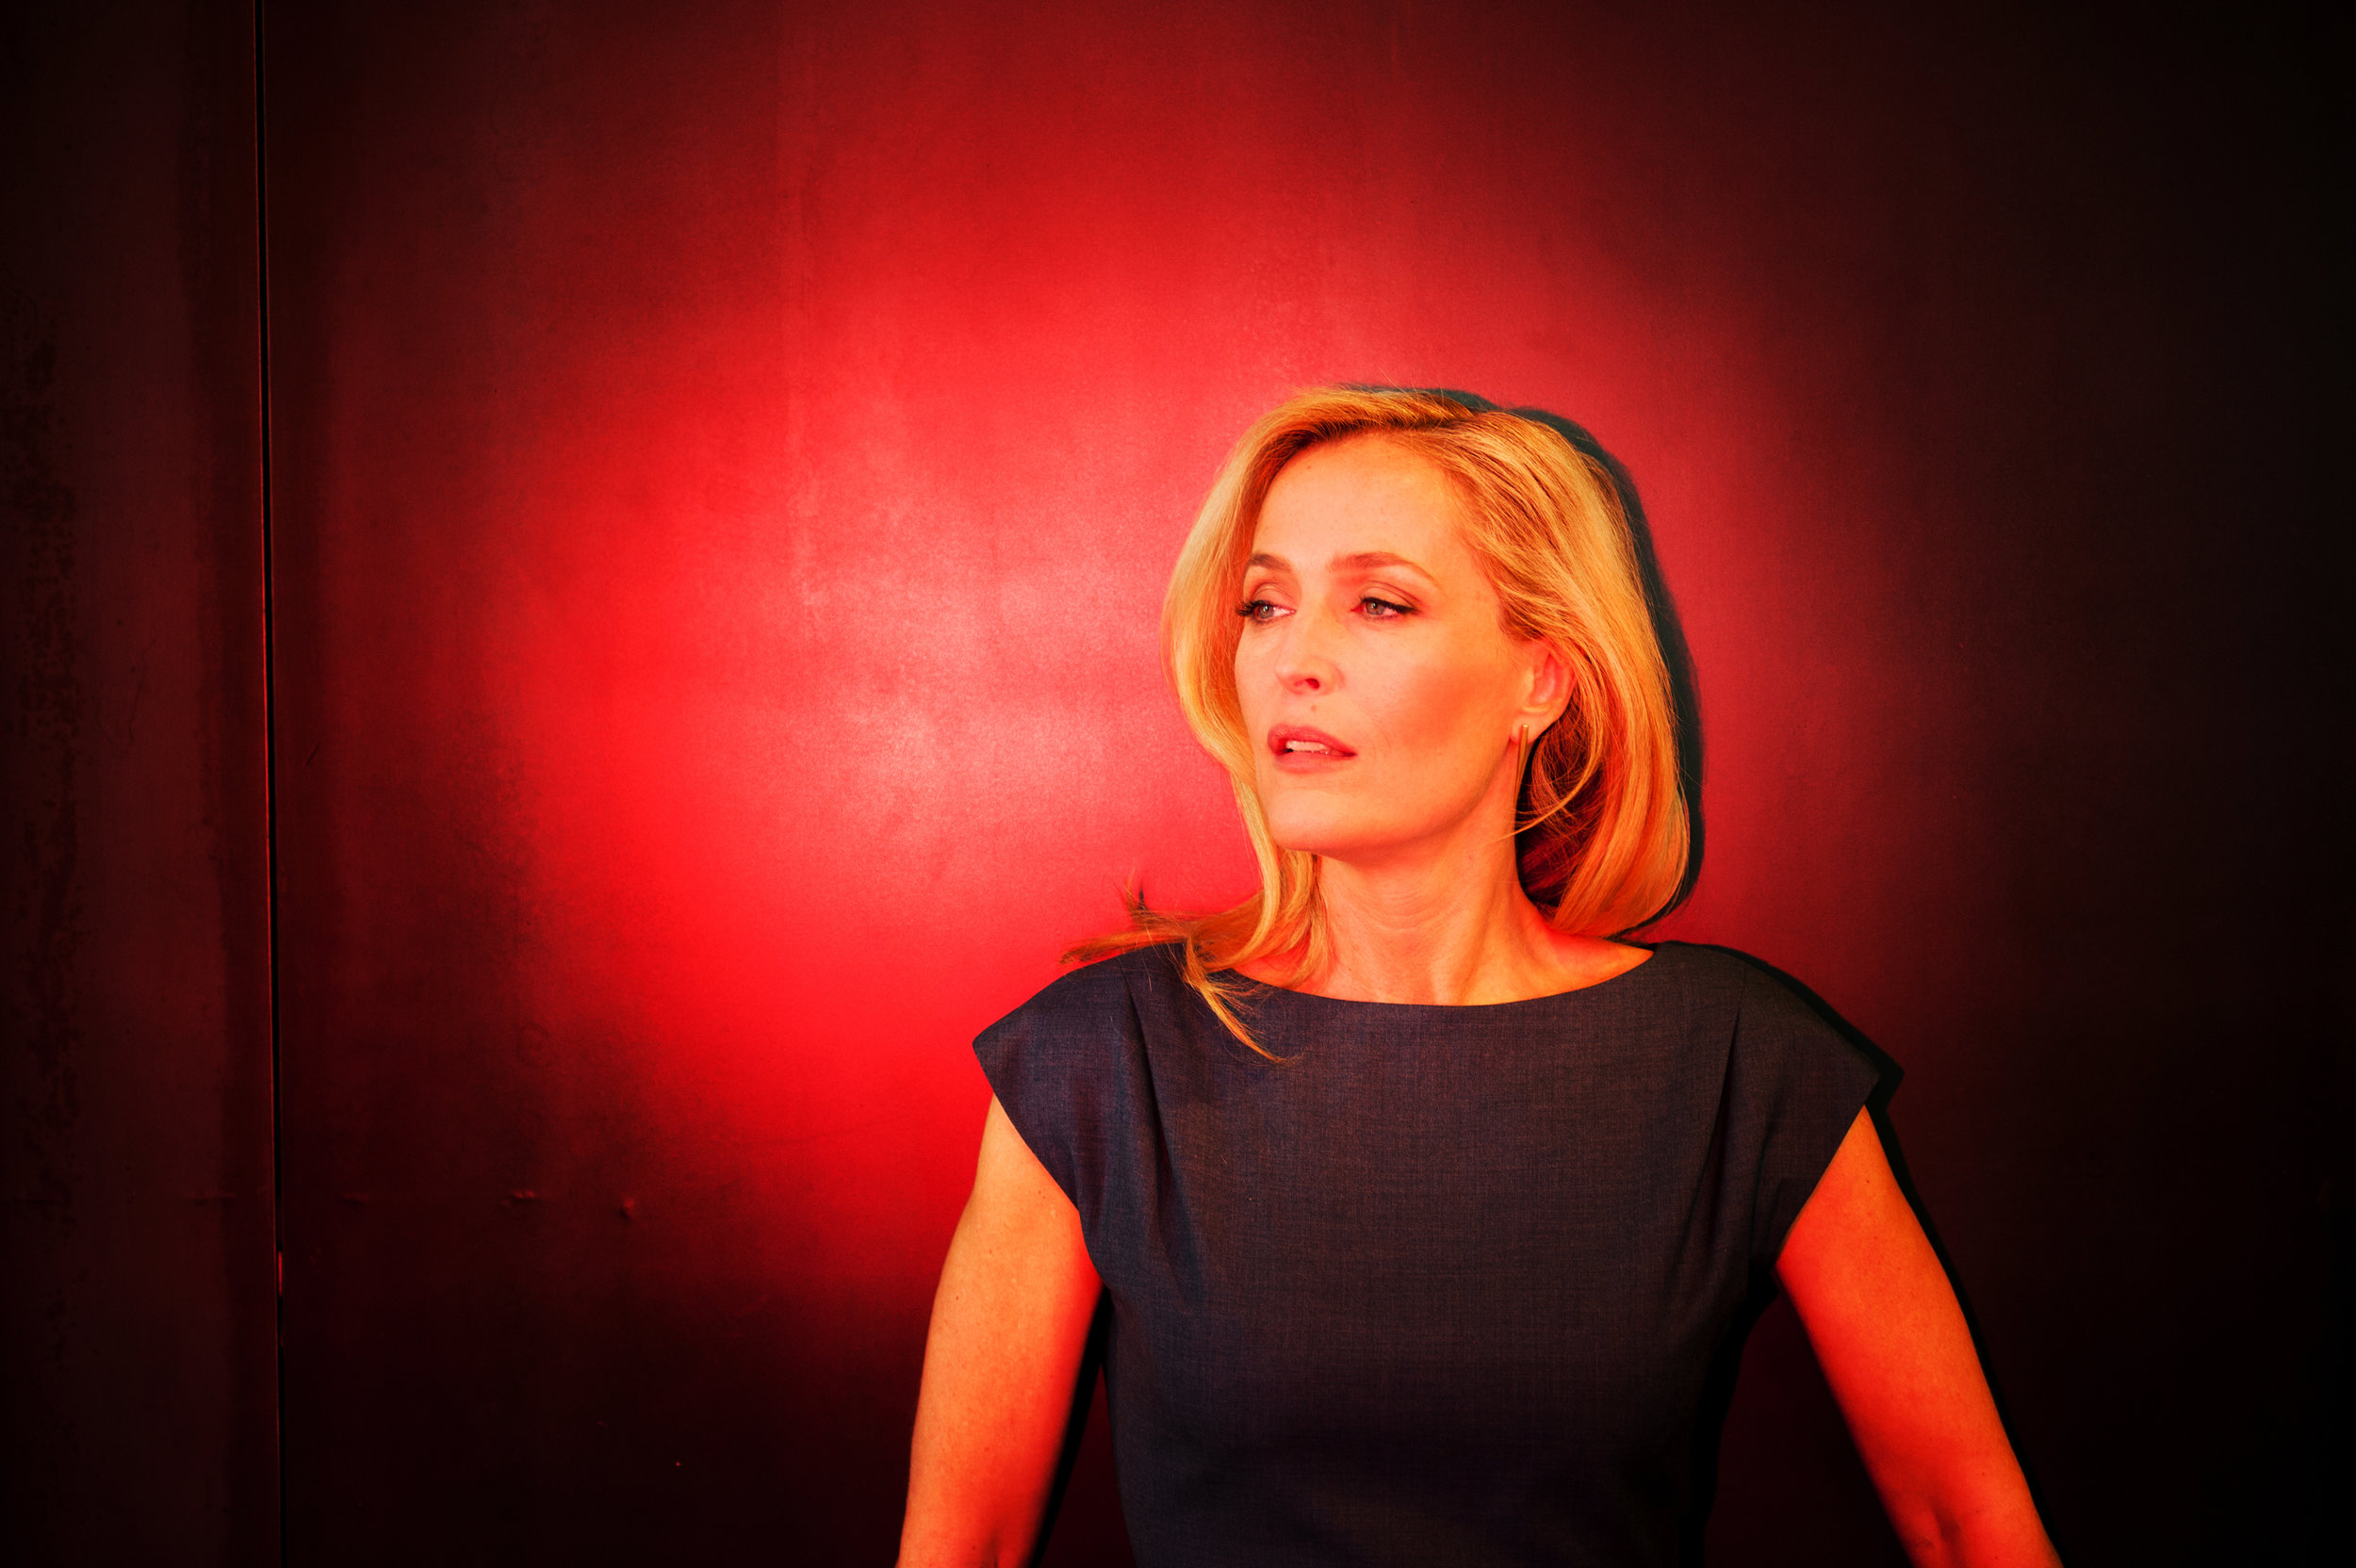 Gillian Anderson for The Wall Street Journal